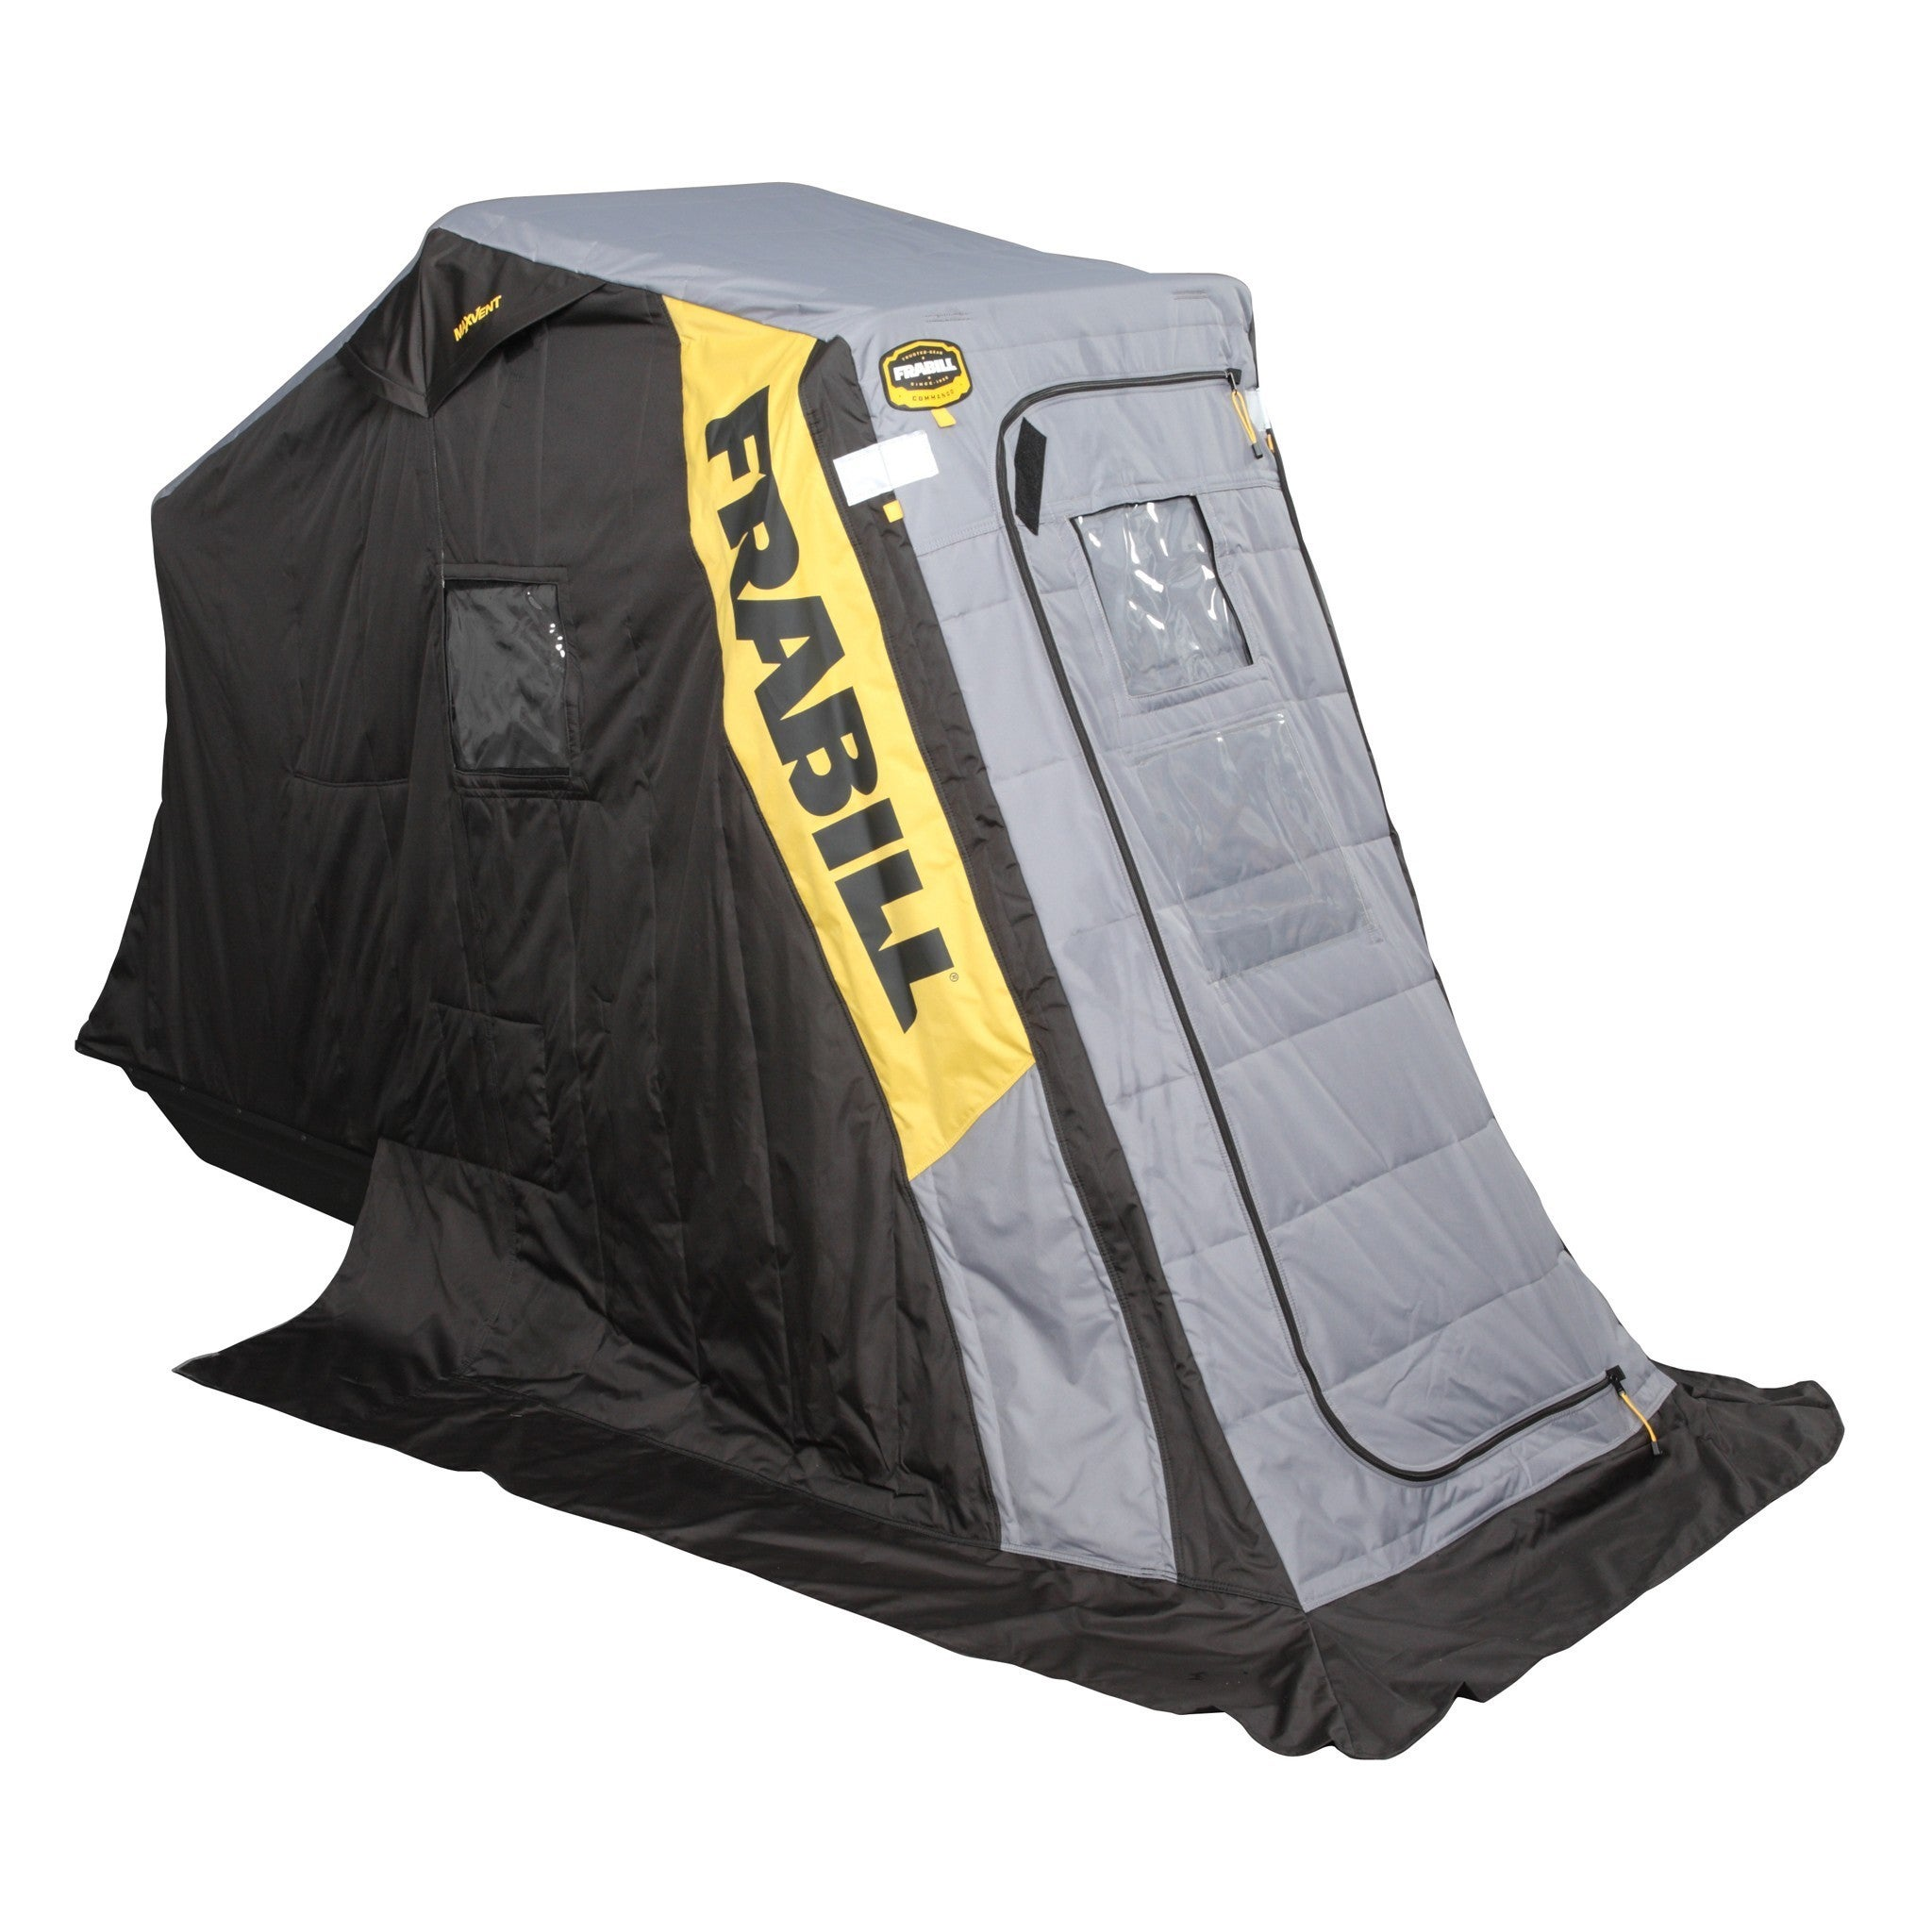 Frabill Thermal Commando 1-person Ice Shelter